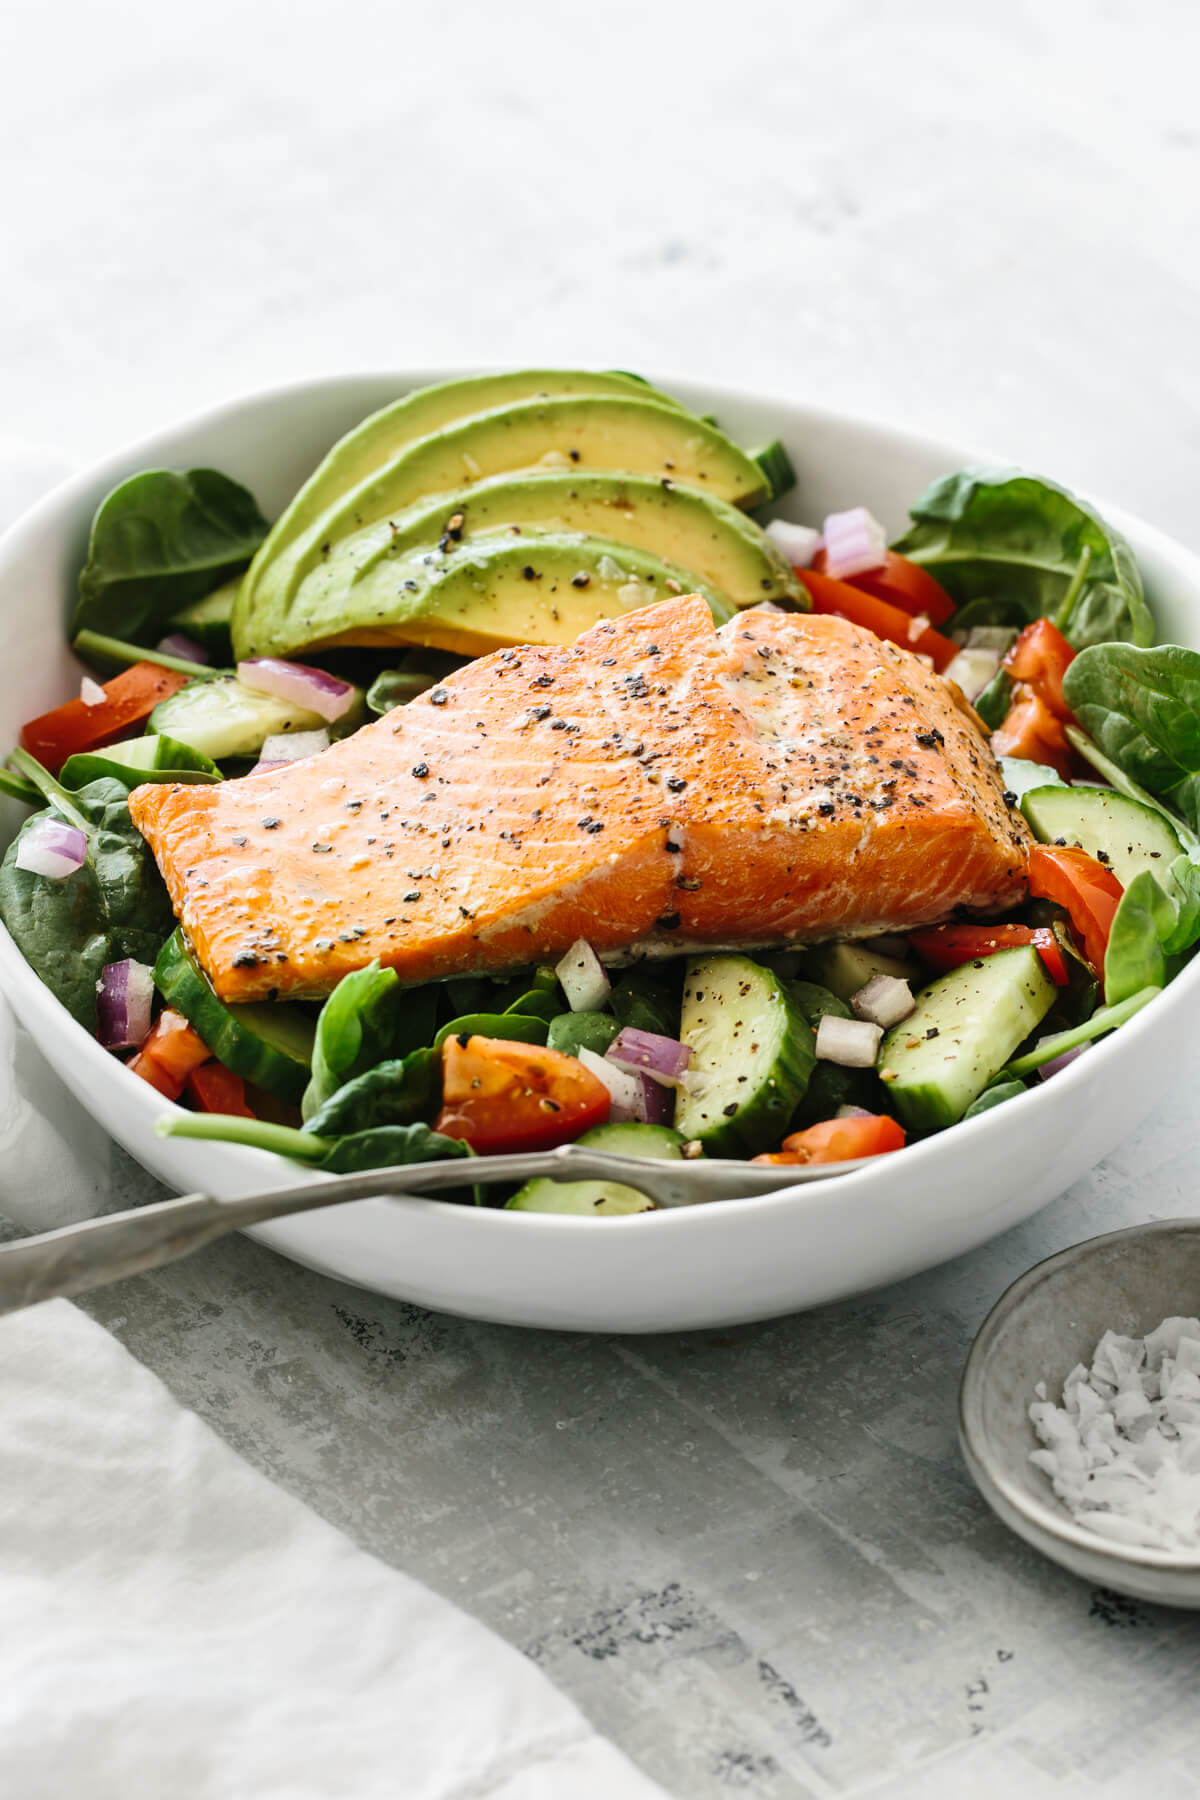 Salmon placed on top of salad recipe with avocado and other ingredients.